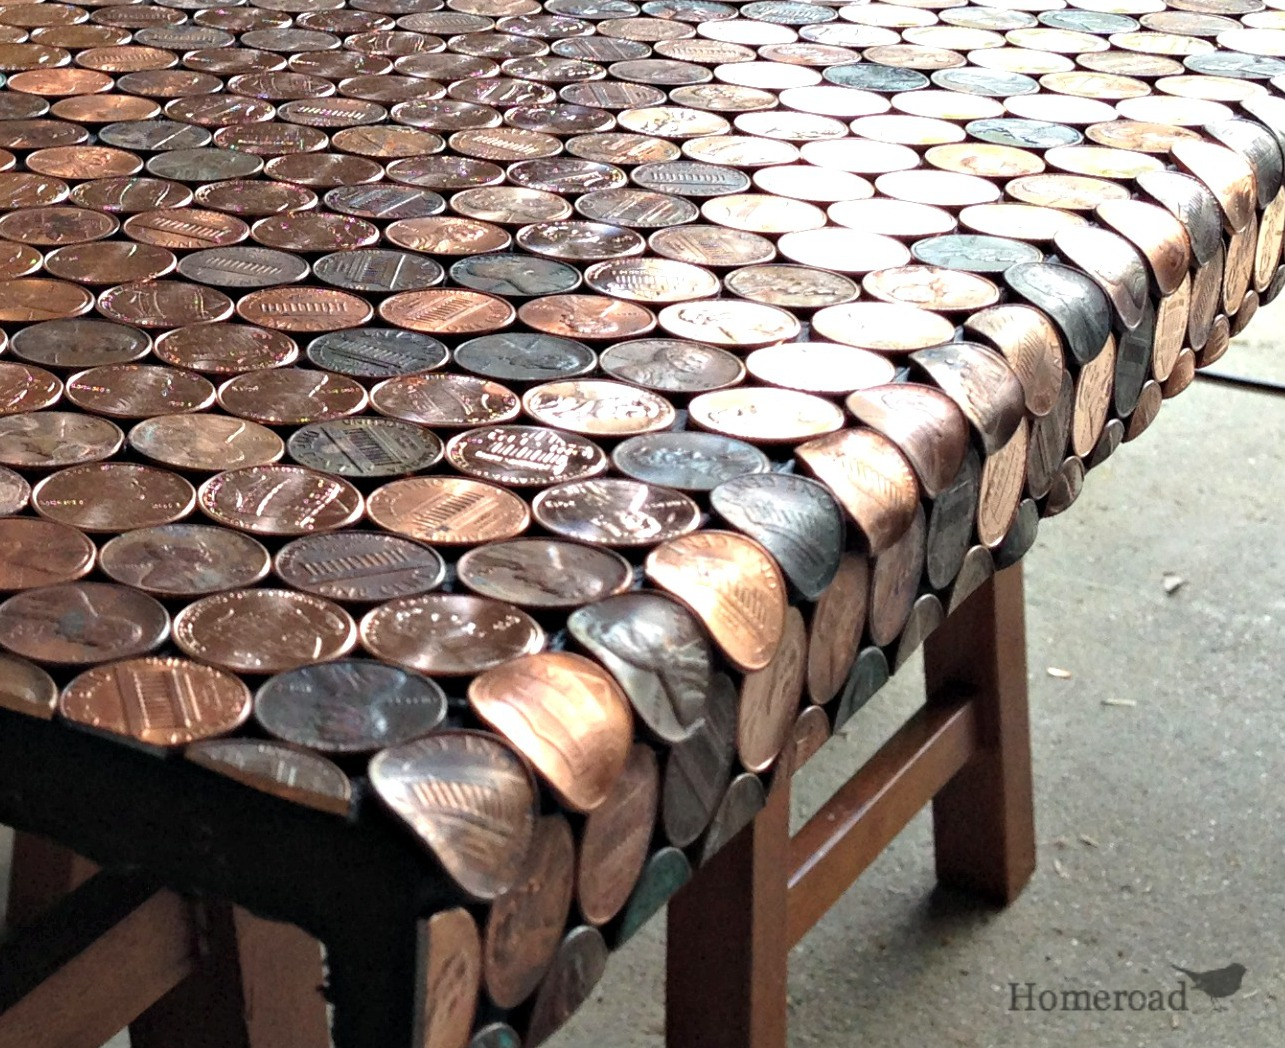 How To Make A Desk Using Pennies Homeroad